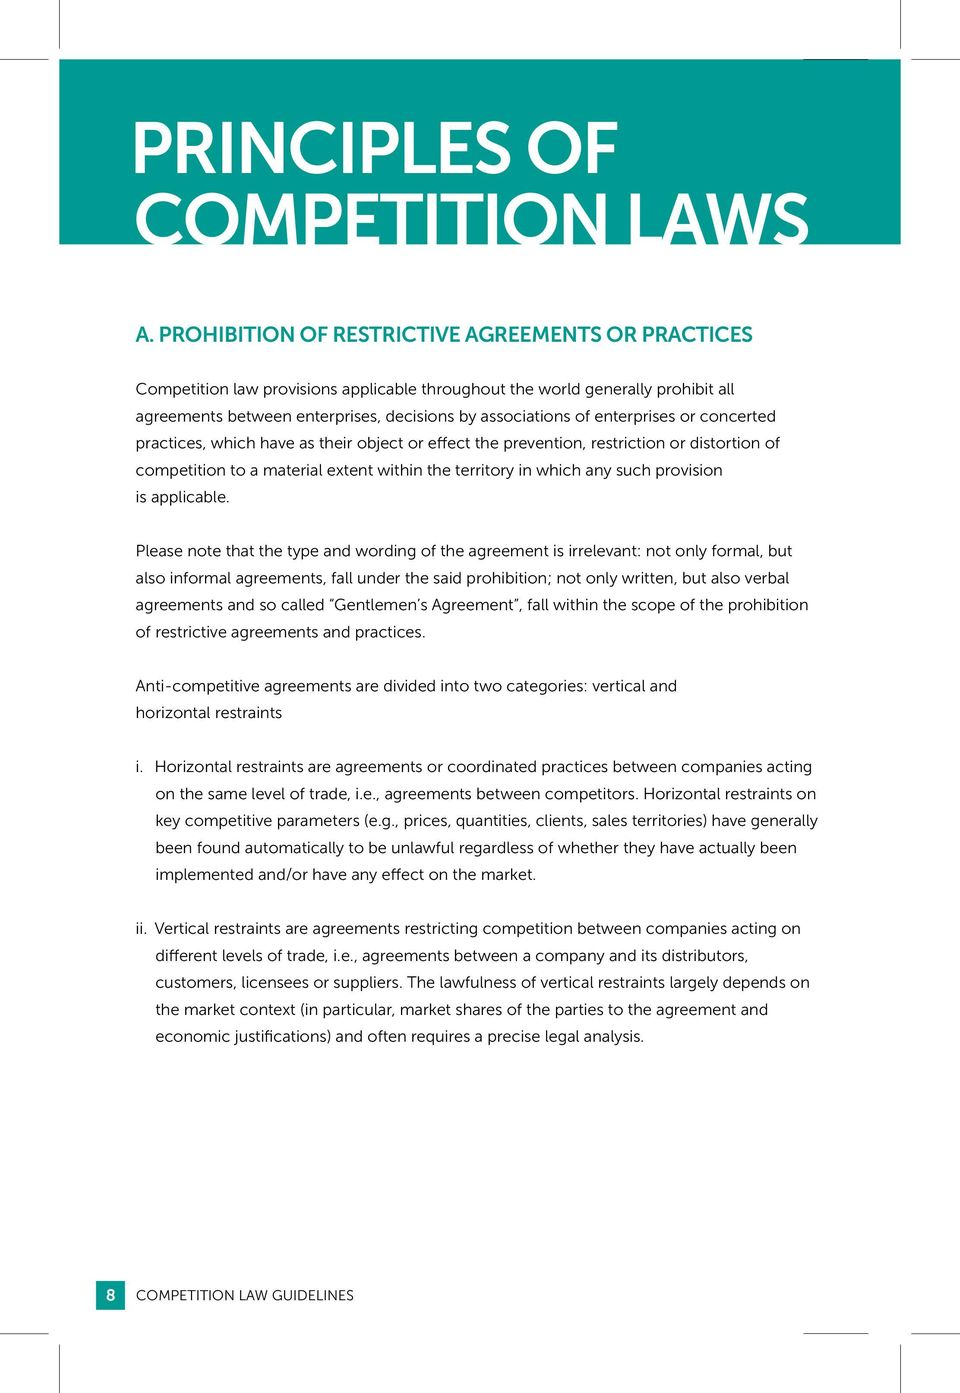 PETRONAS COMPETITION LAW GUIDELINES - PDF